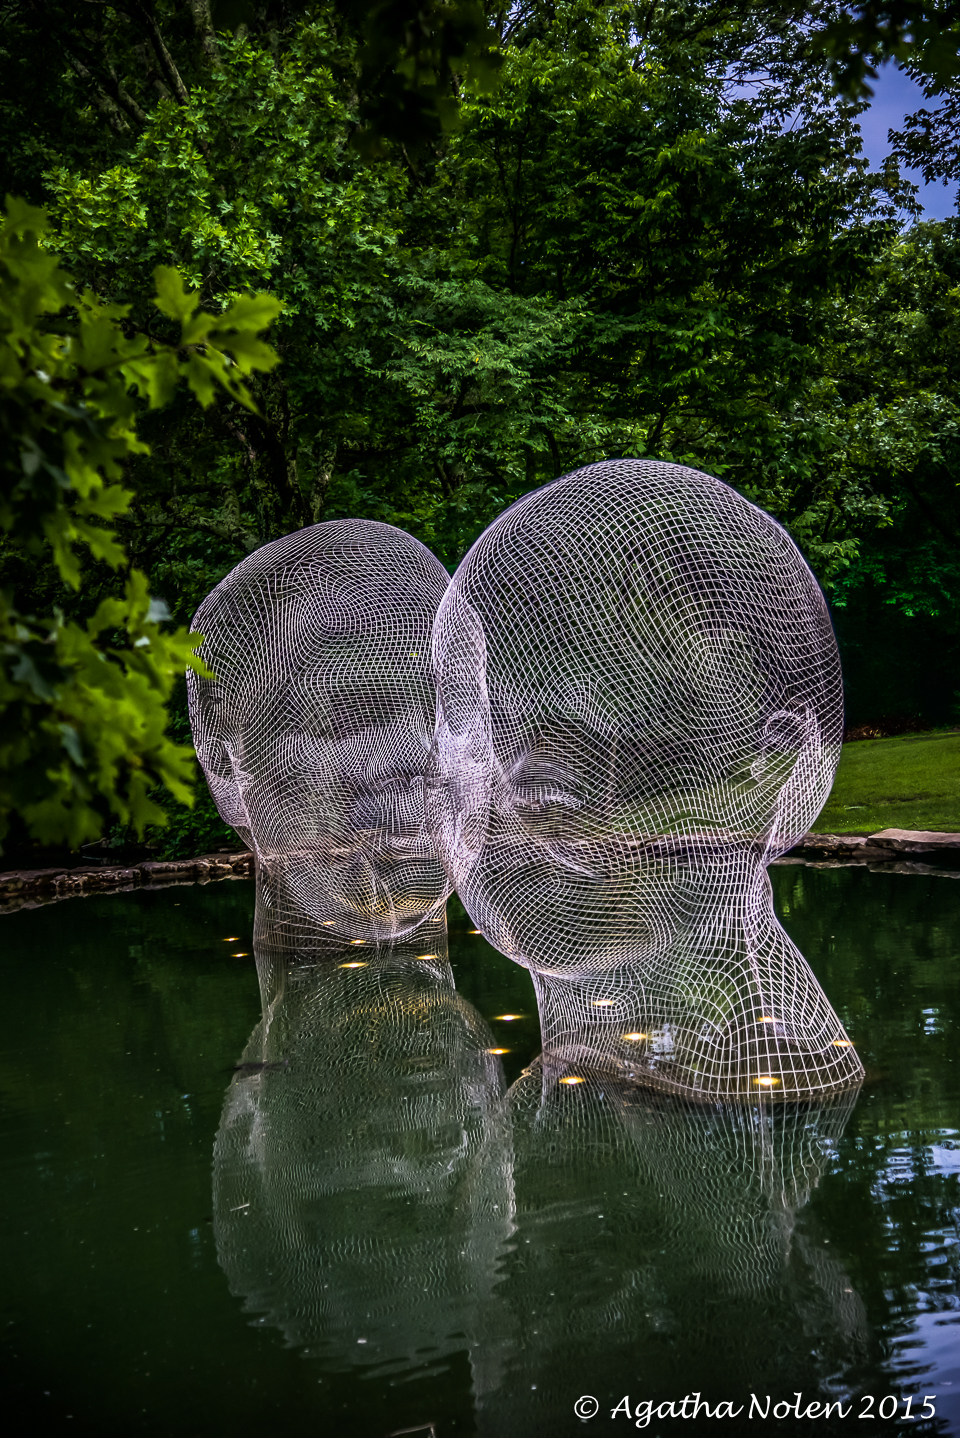 Awilda and Irma, Jaume Plensa, Cheekwood 2015